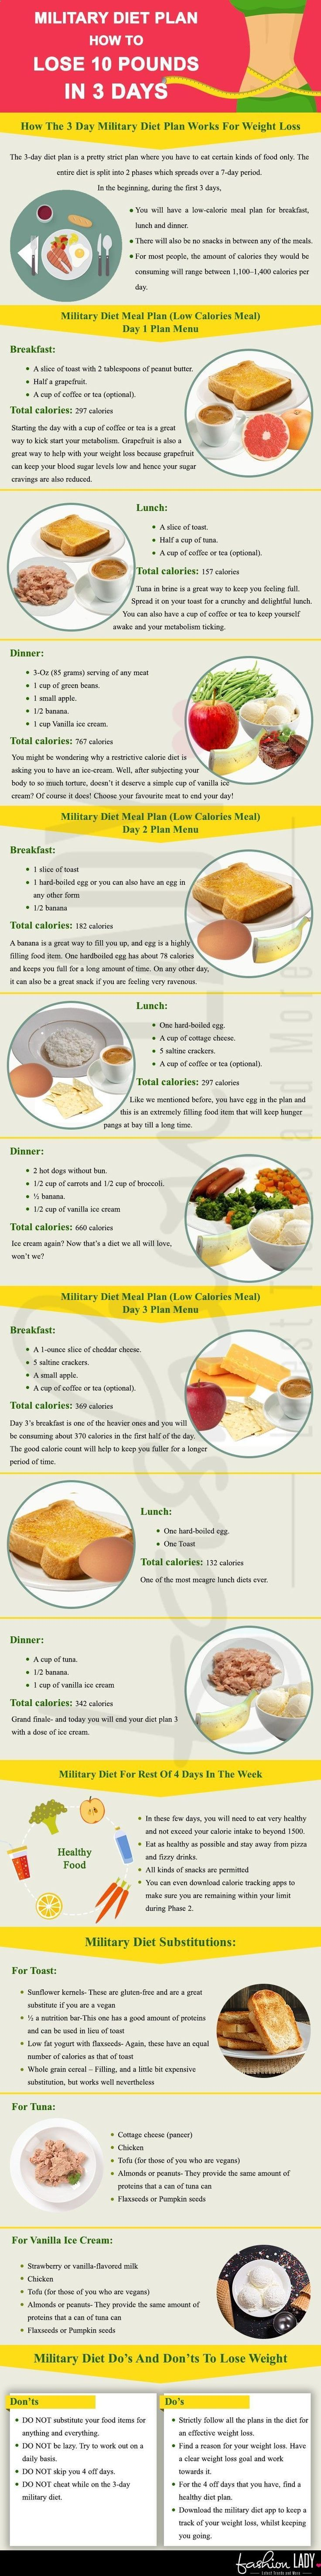 3 Week Diet Loss Weight - Military Diet Plan – Here's How You Can Lose 10 Pounds In 3 Days THE 3 WEEK DIET is a revolutionary new diet system that not only guarantees to help you lose weight — it promises to help you lose more weight — all body fat — faster than anything else you've ever tried. #loseweightmeals #WeightLossFastExtreme #3DayLiverDetox